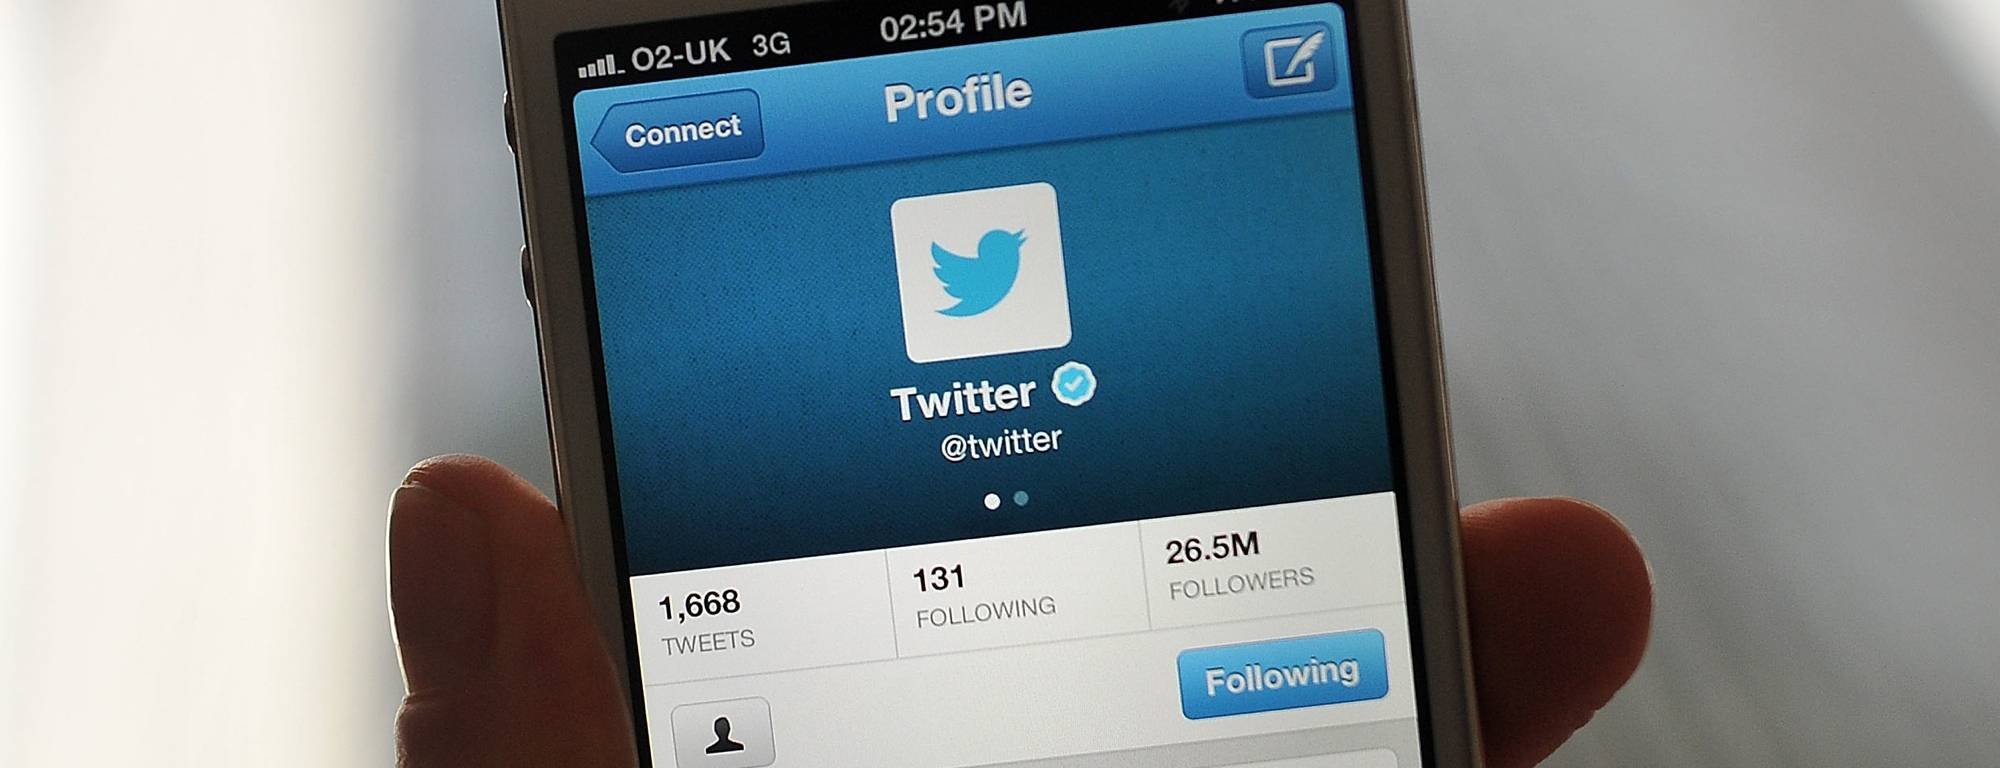 9 Ways to Get More Twitter Followers (Ethically)